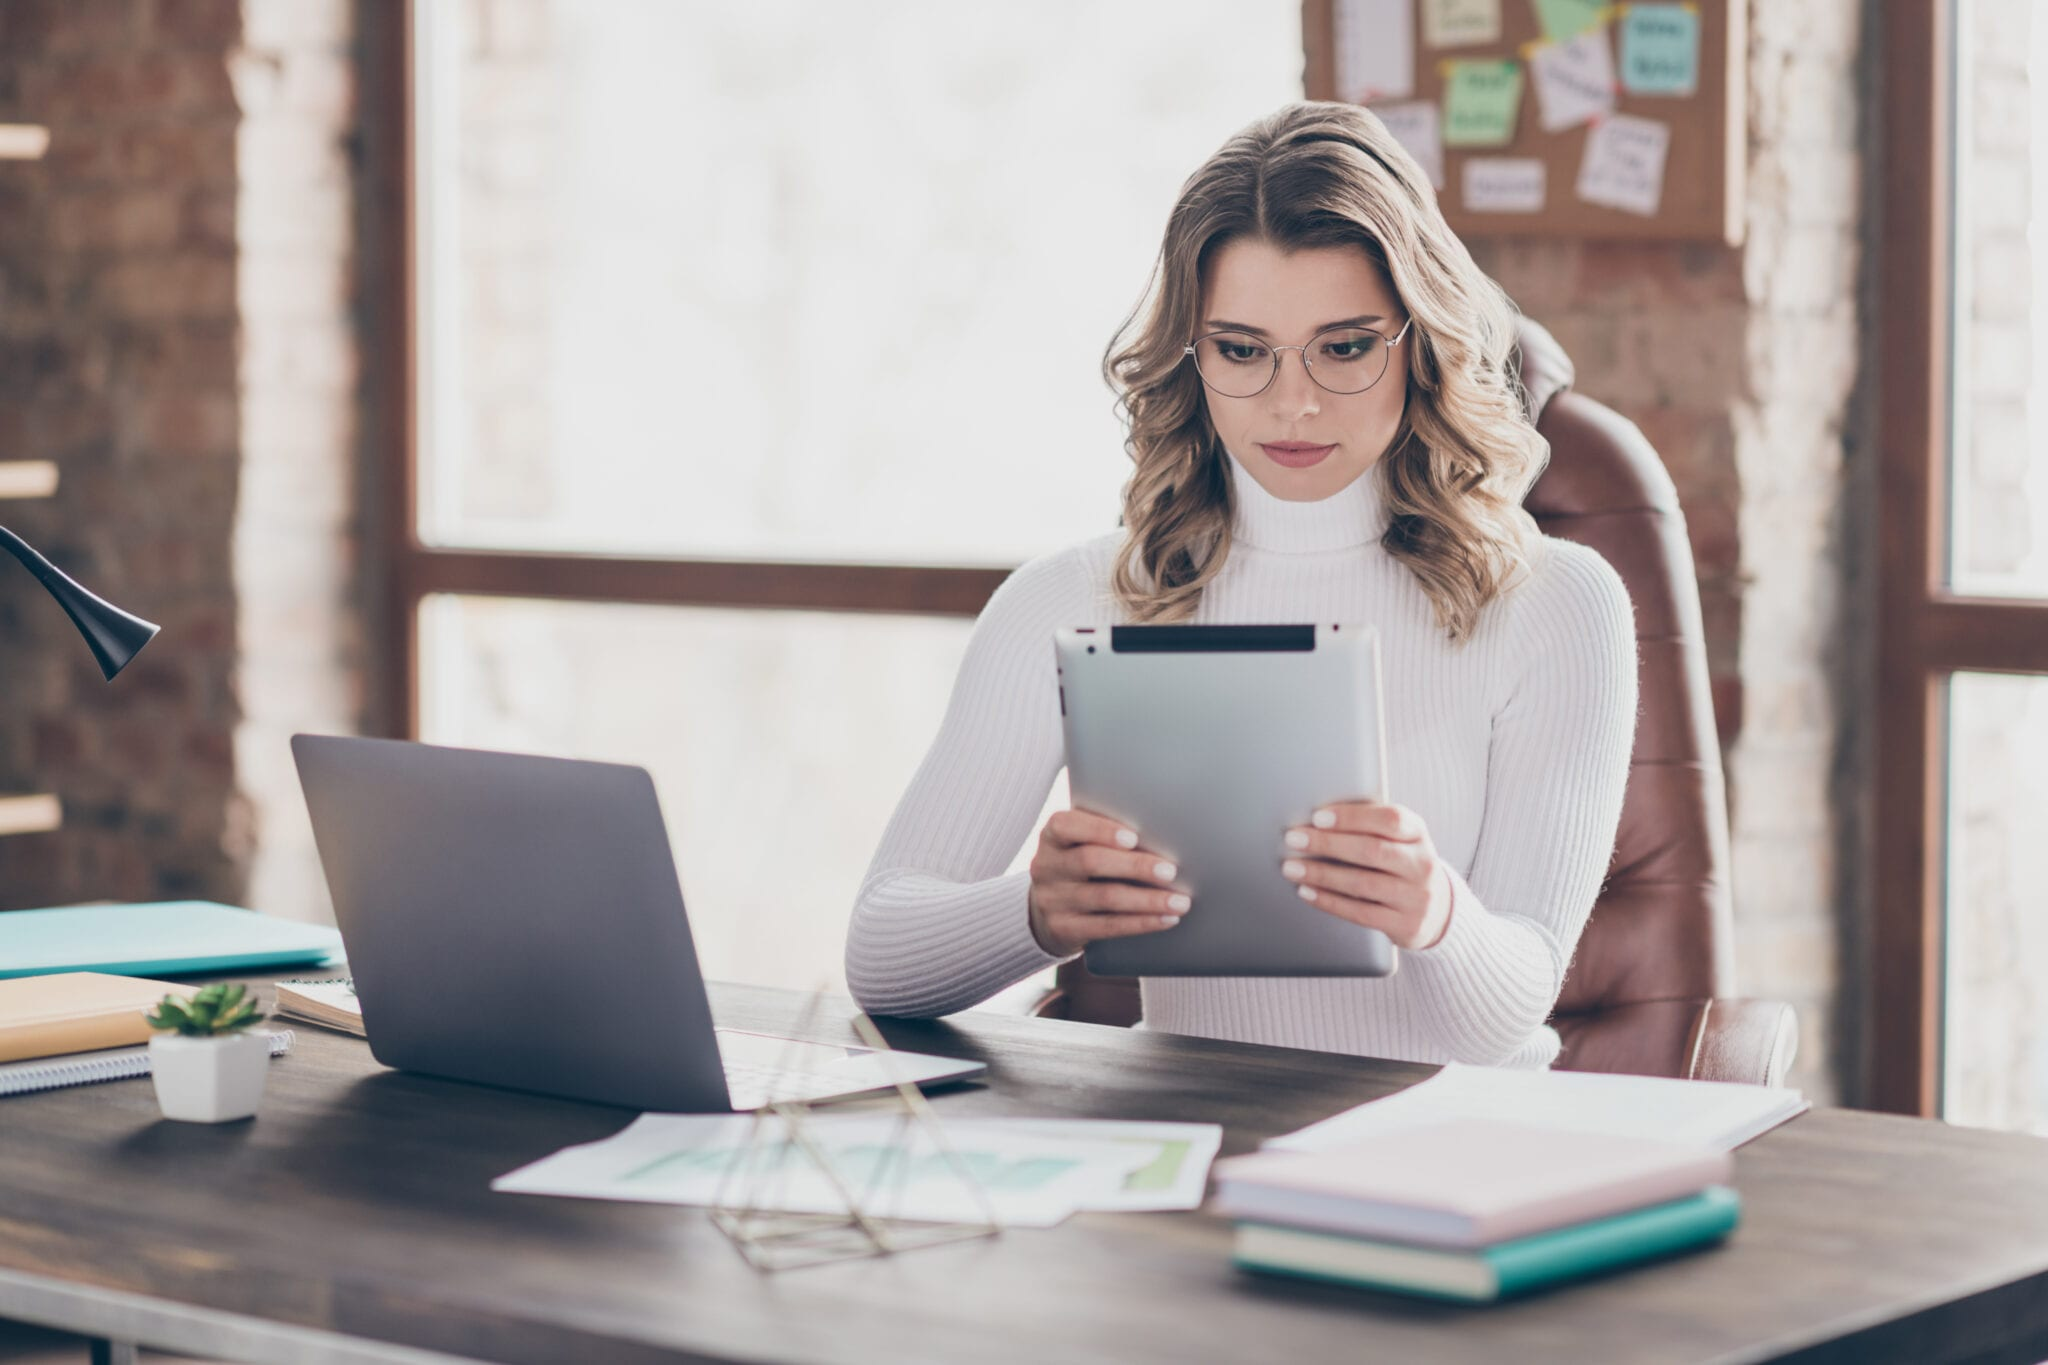 A woman sitting at her desk researching stock market blogs.